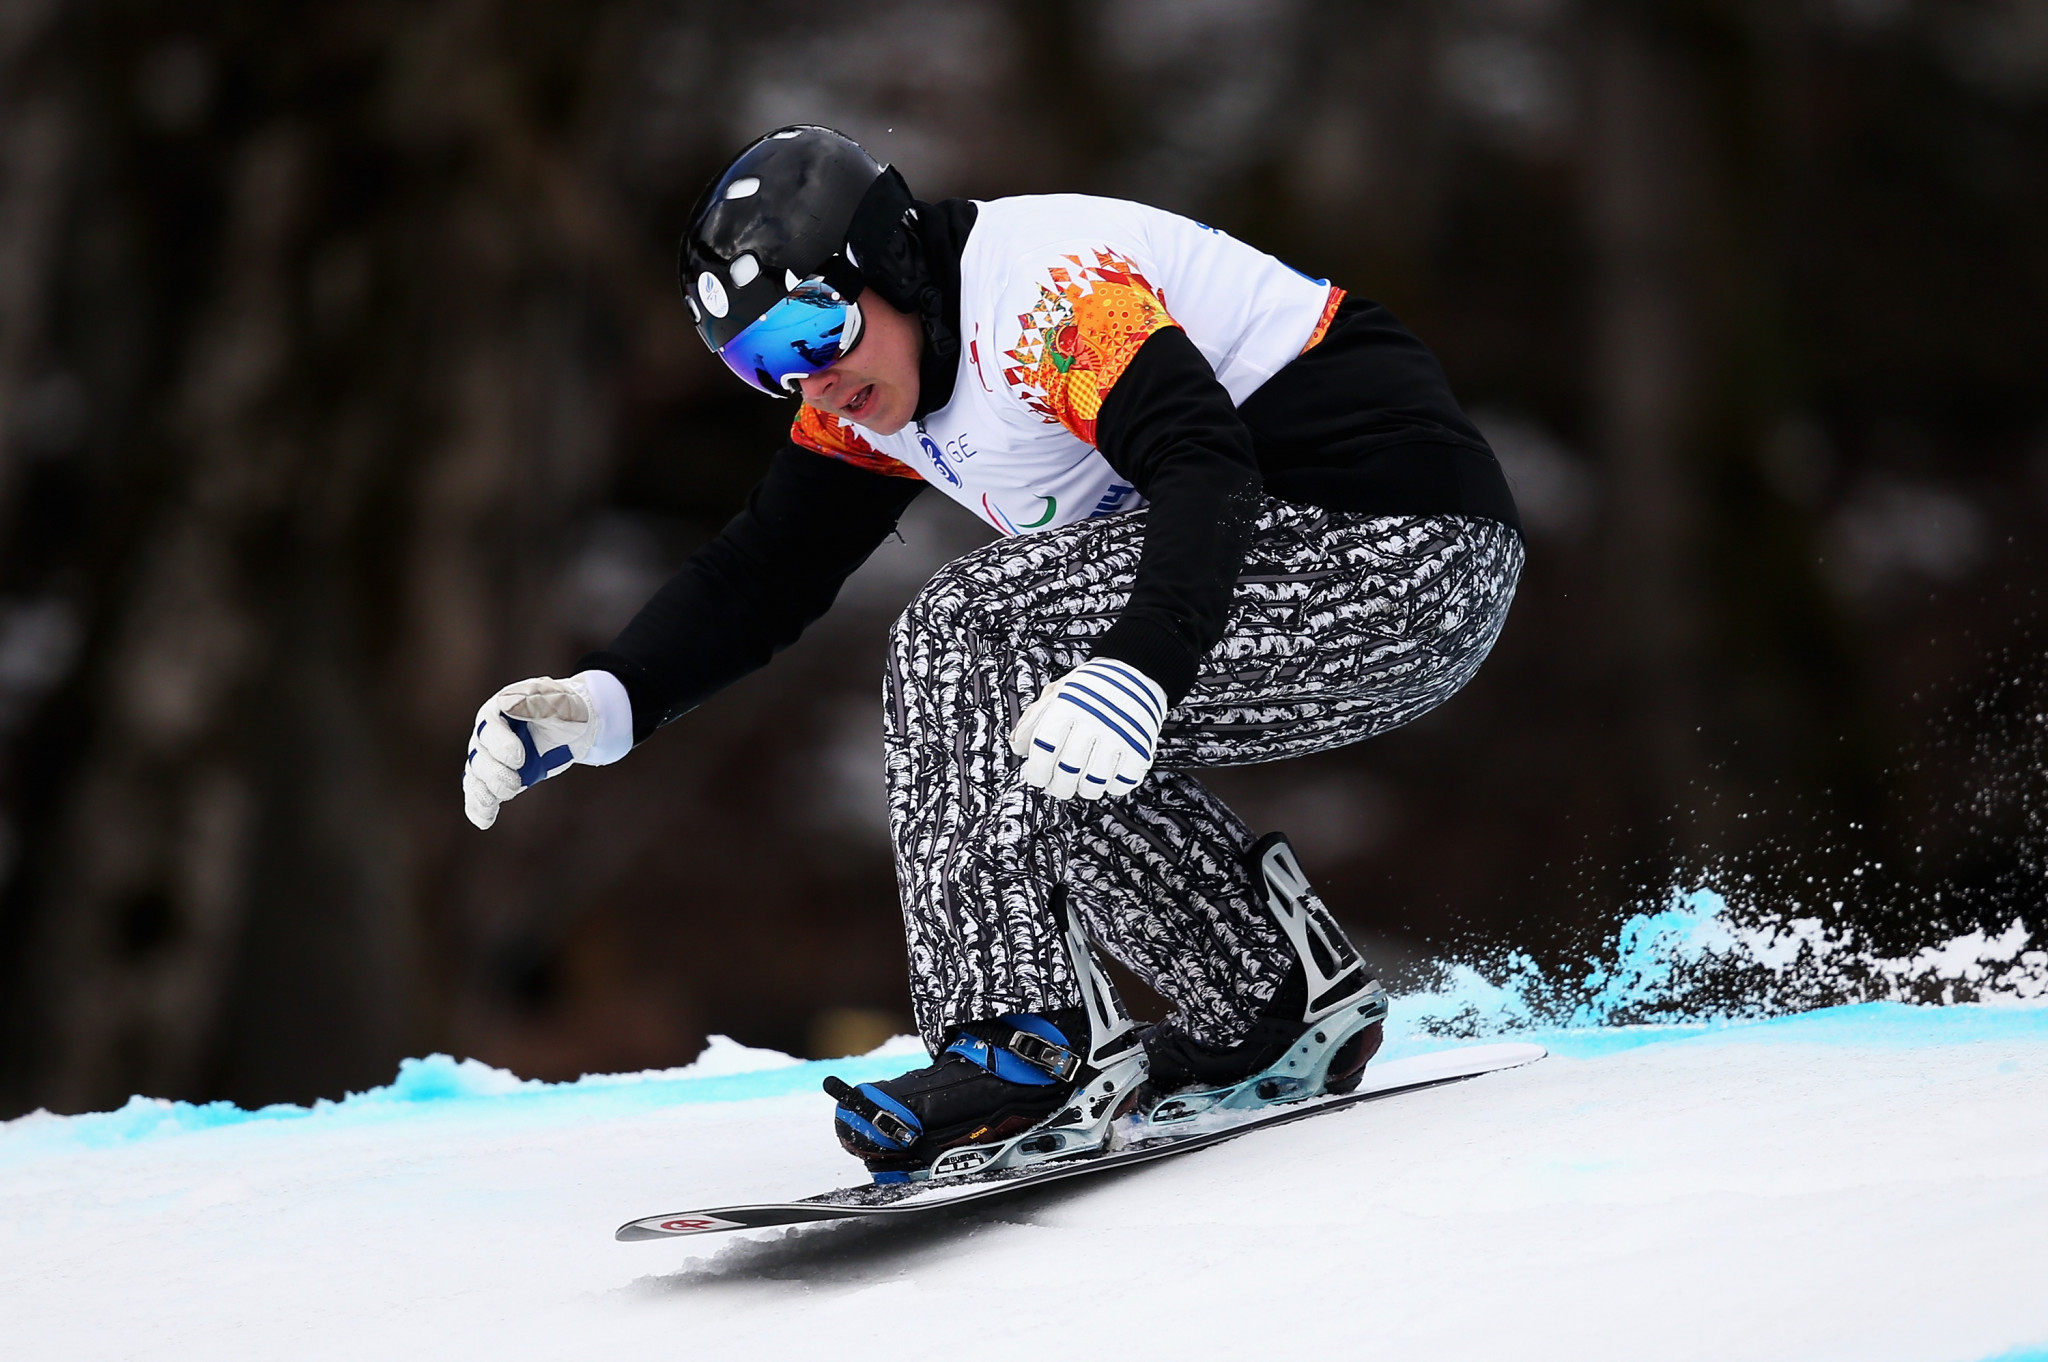 Snowboarder Matti Suur-Hamari won Finland's only Paralympic gold medal at Pyeongchang 2018 ©Getty Images